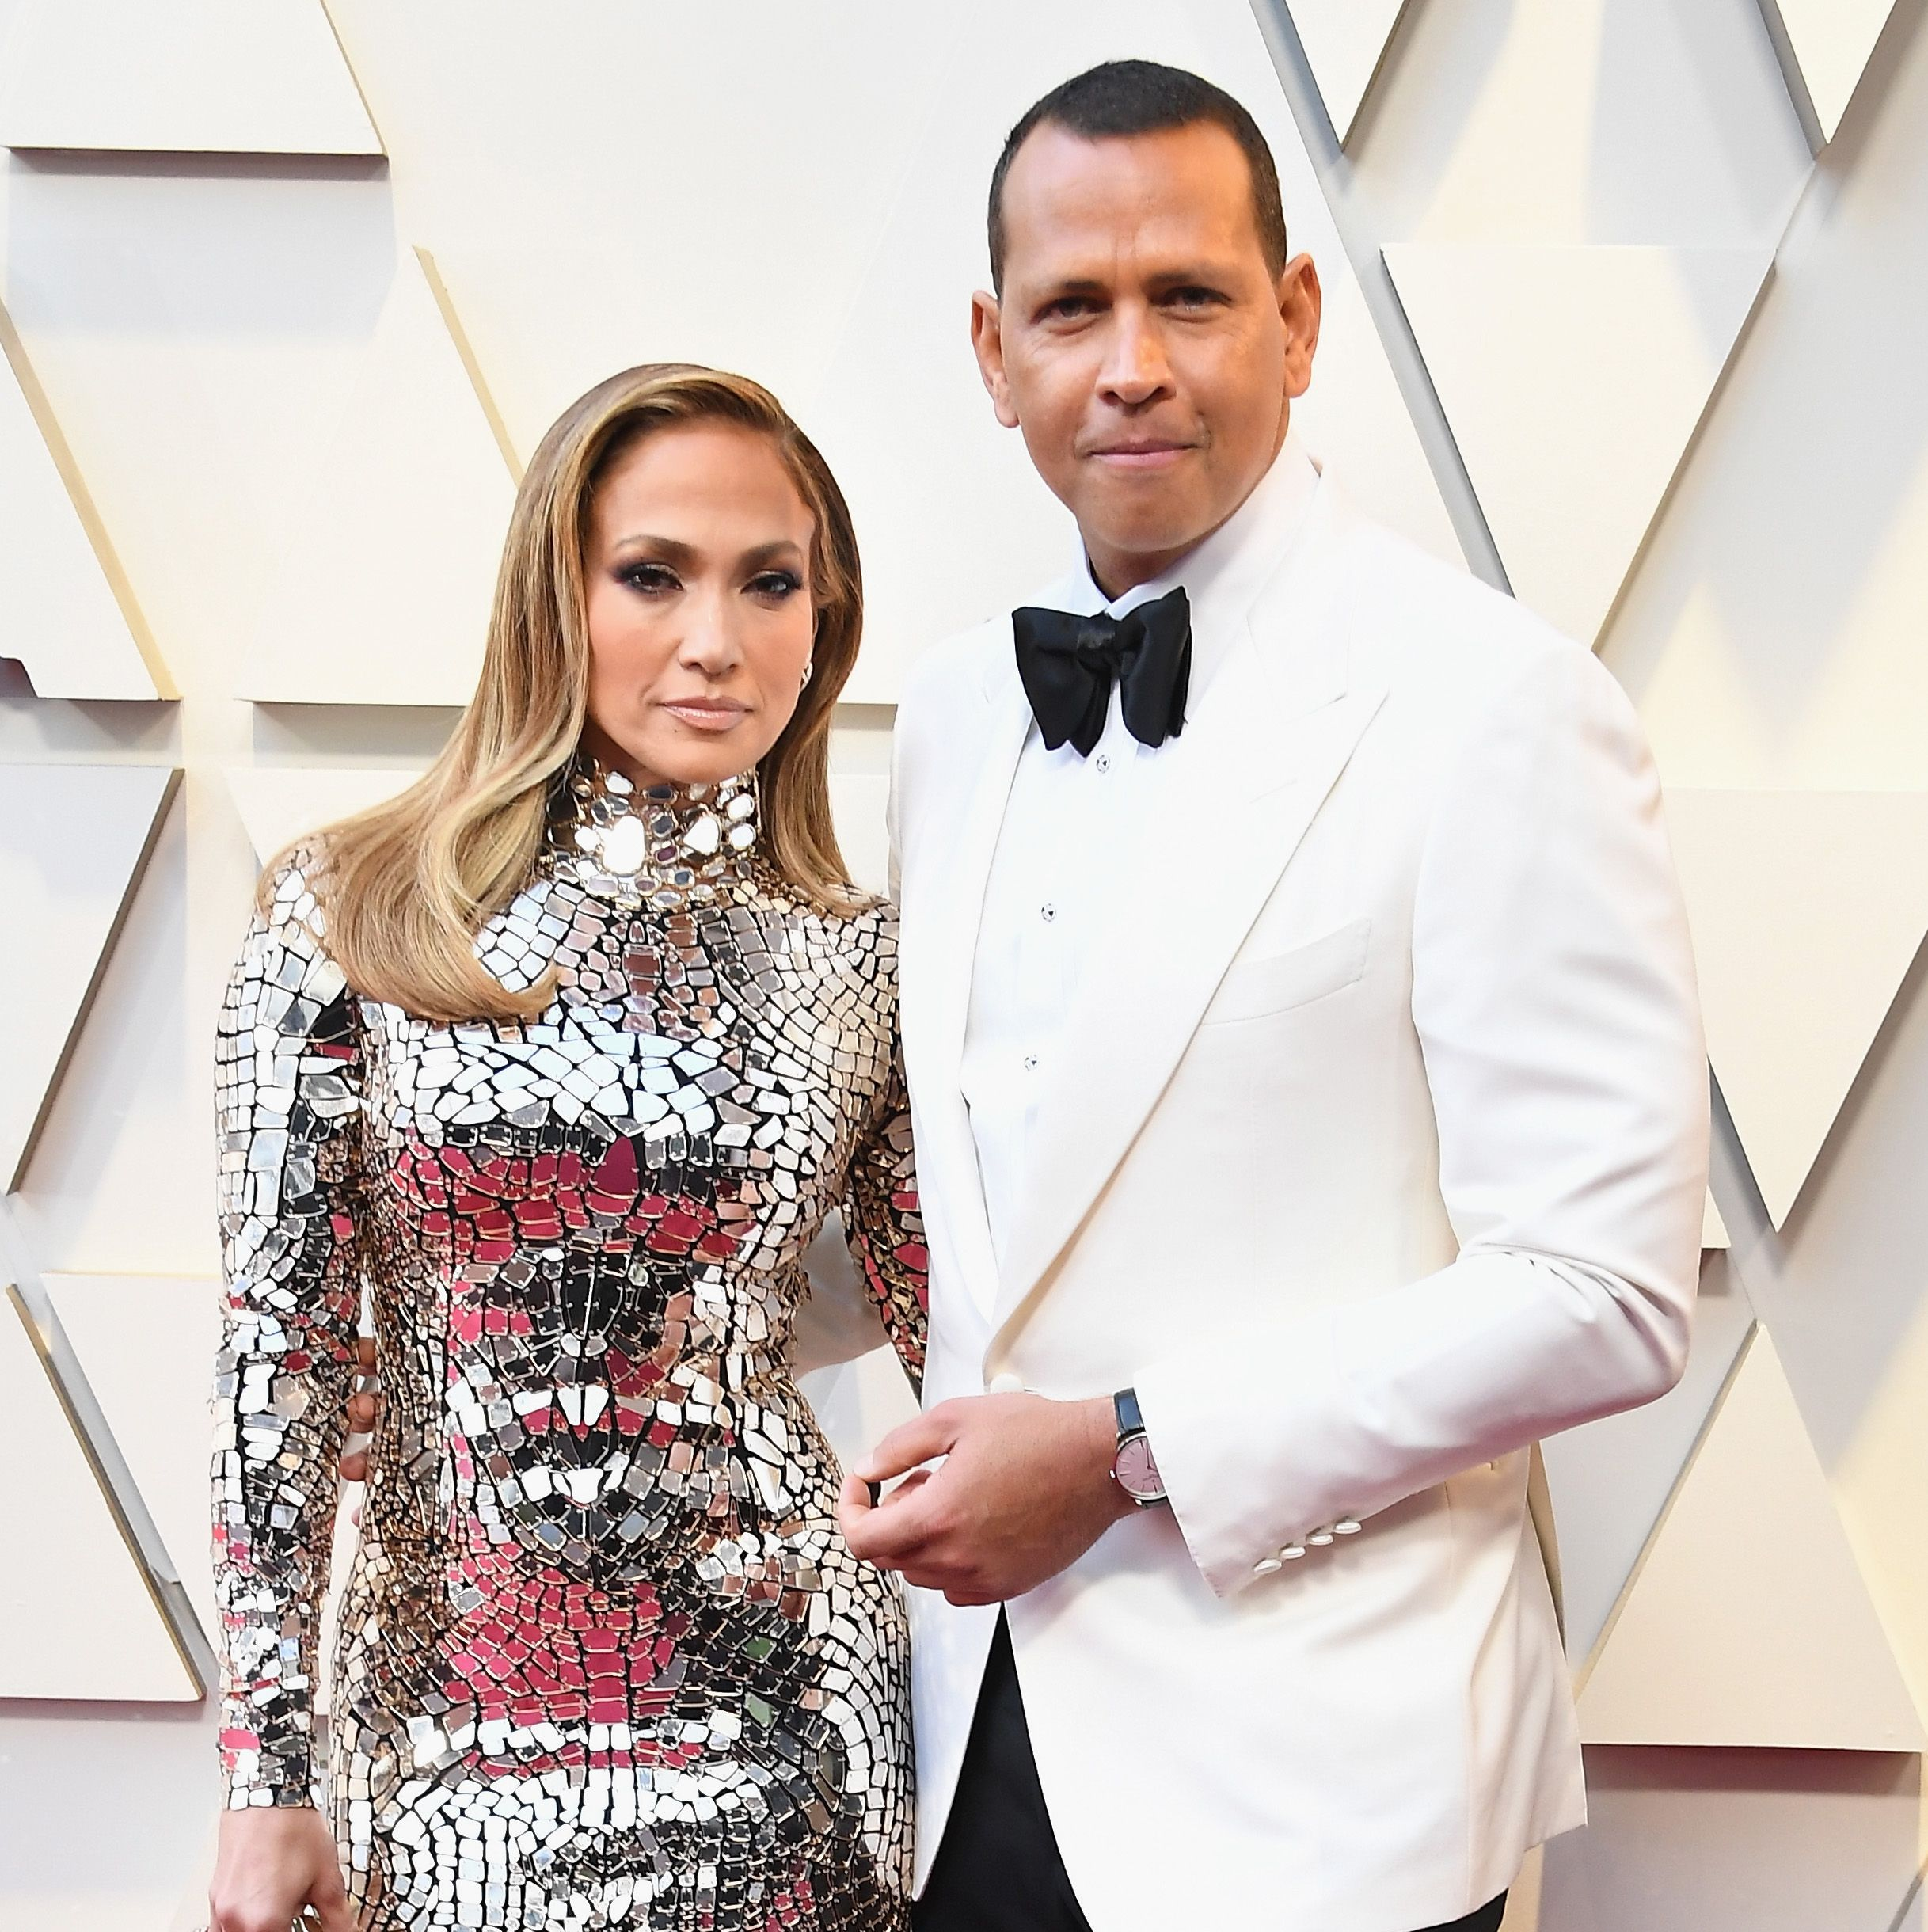 Jennifer Lopez and A-Rod Just Shared Their 10-Day Wedding Workout Challenge